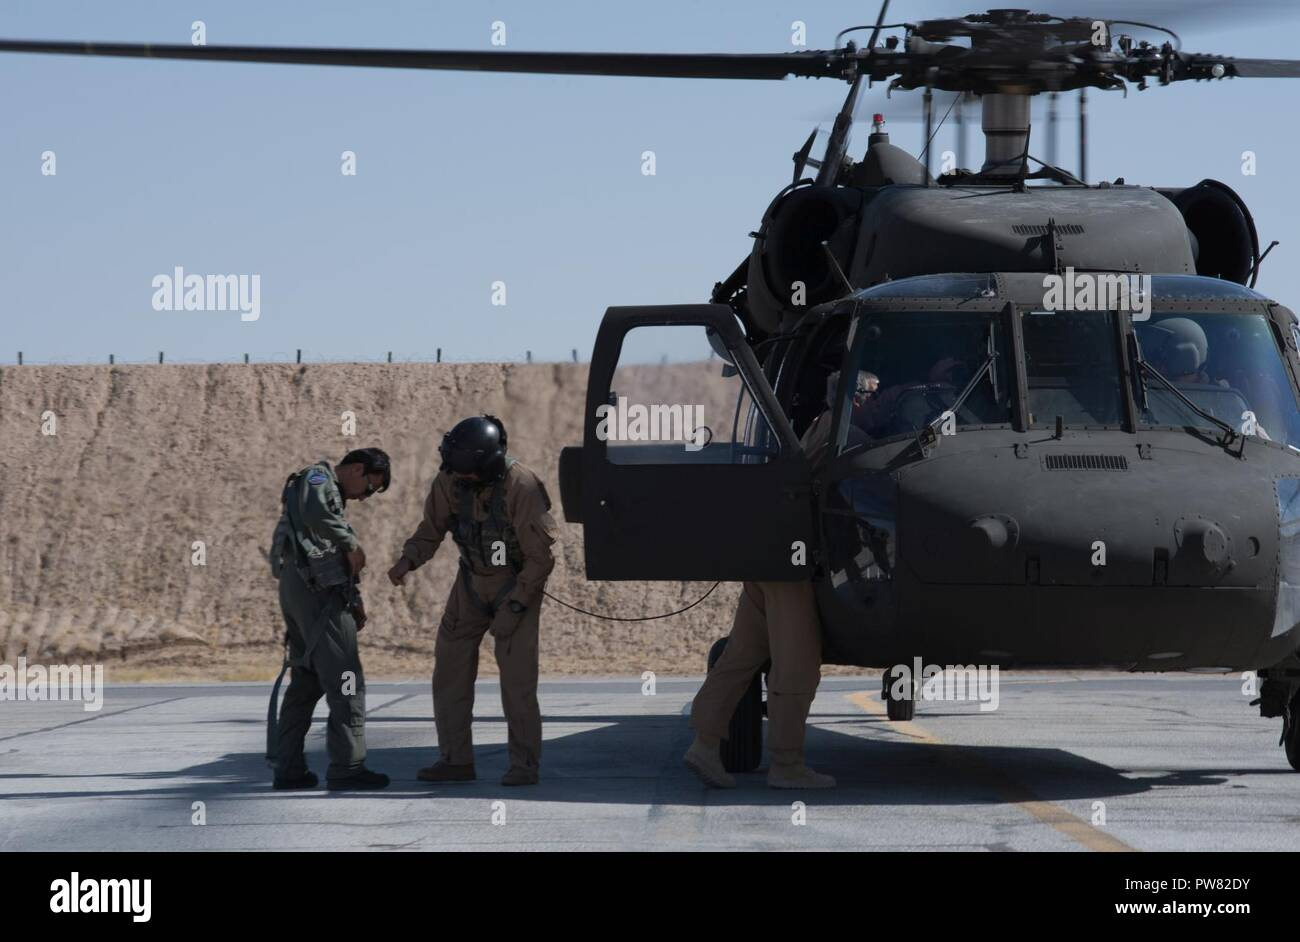 us instructor pilots assist an afghan mi 17 pilot into a safety harness before his first orientation flight in the afghan uh 60a black hawk oct 3 2017 at kandahar airfield afghanistan mi 17 pilots are retraining to the black hawk and are expected to fly the aircraft by the end of 2017 the uh 60 is part of a multi year modernization plan for the afghan air force PW82DY u s instructor pilots assist an afghan mi 17 pilot into a safety